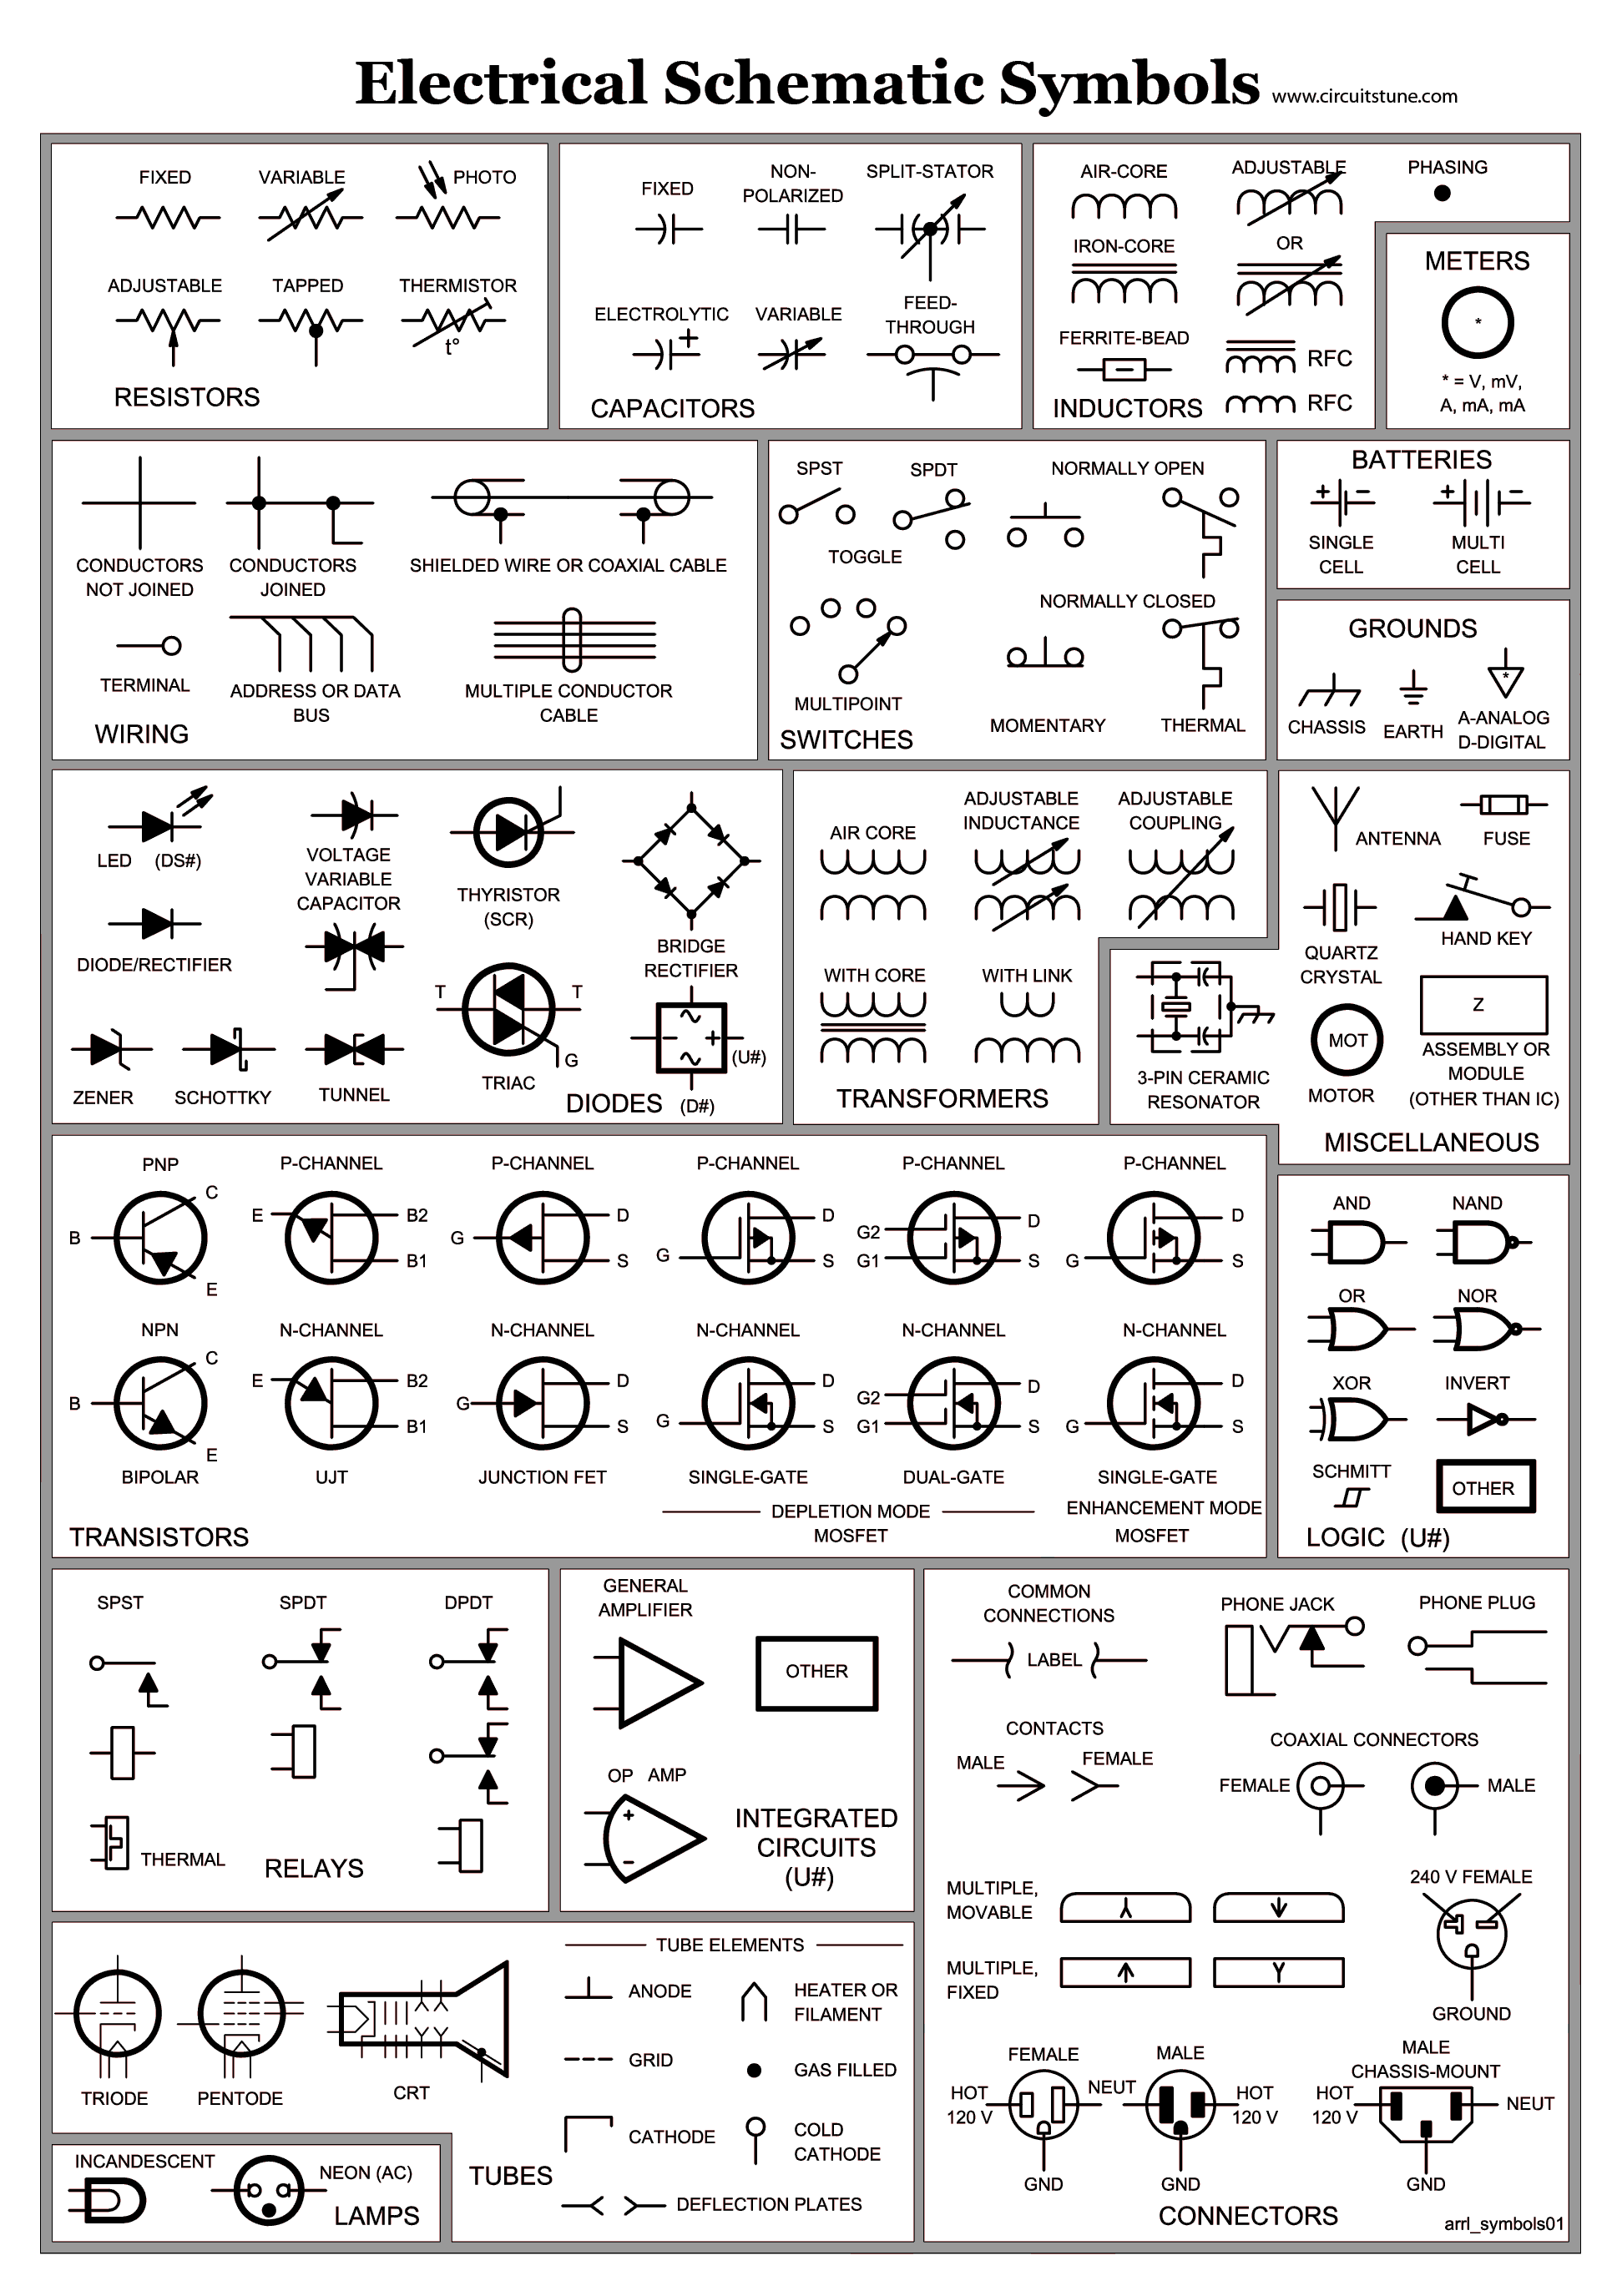 electrical schematic symbols skinsquiggles electrical symbols Industrial Wiring Diagram Symbols electrical schematic symbols